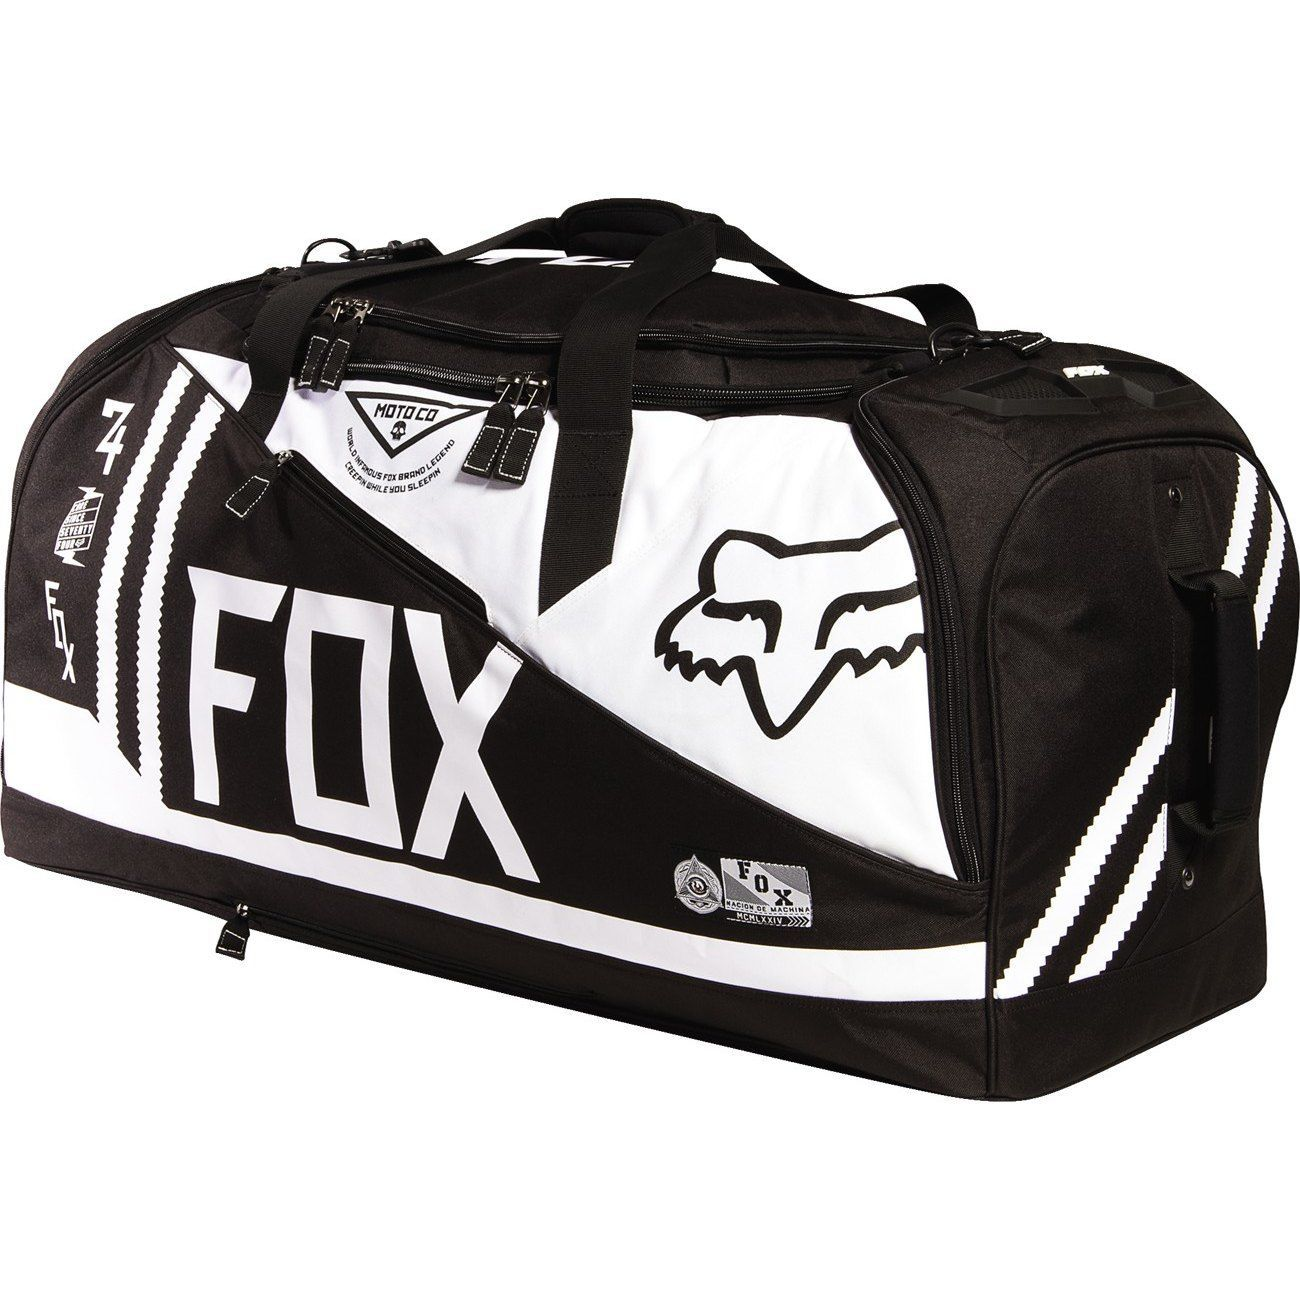 Fox Motocrosser Fox Racing Podium Machina Gear Bag Chaparral Mot Fox Motocross Boots Racing Gear Dirt Bike Riding Gear